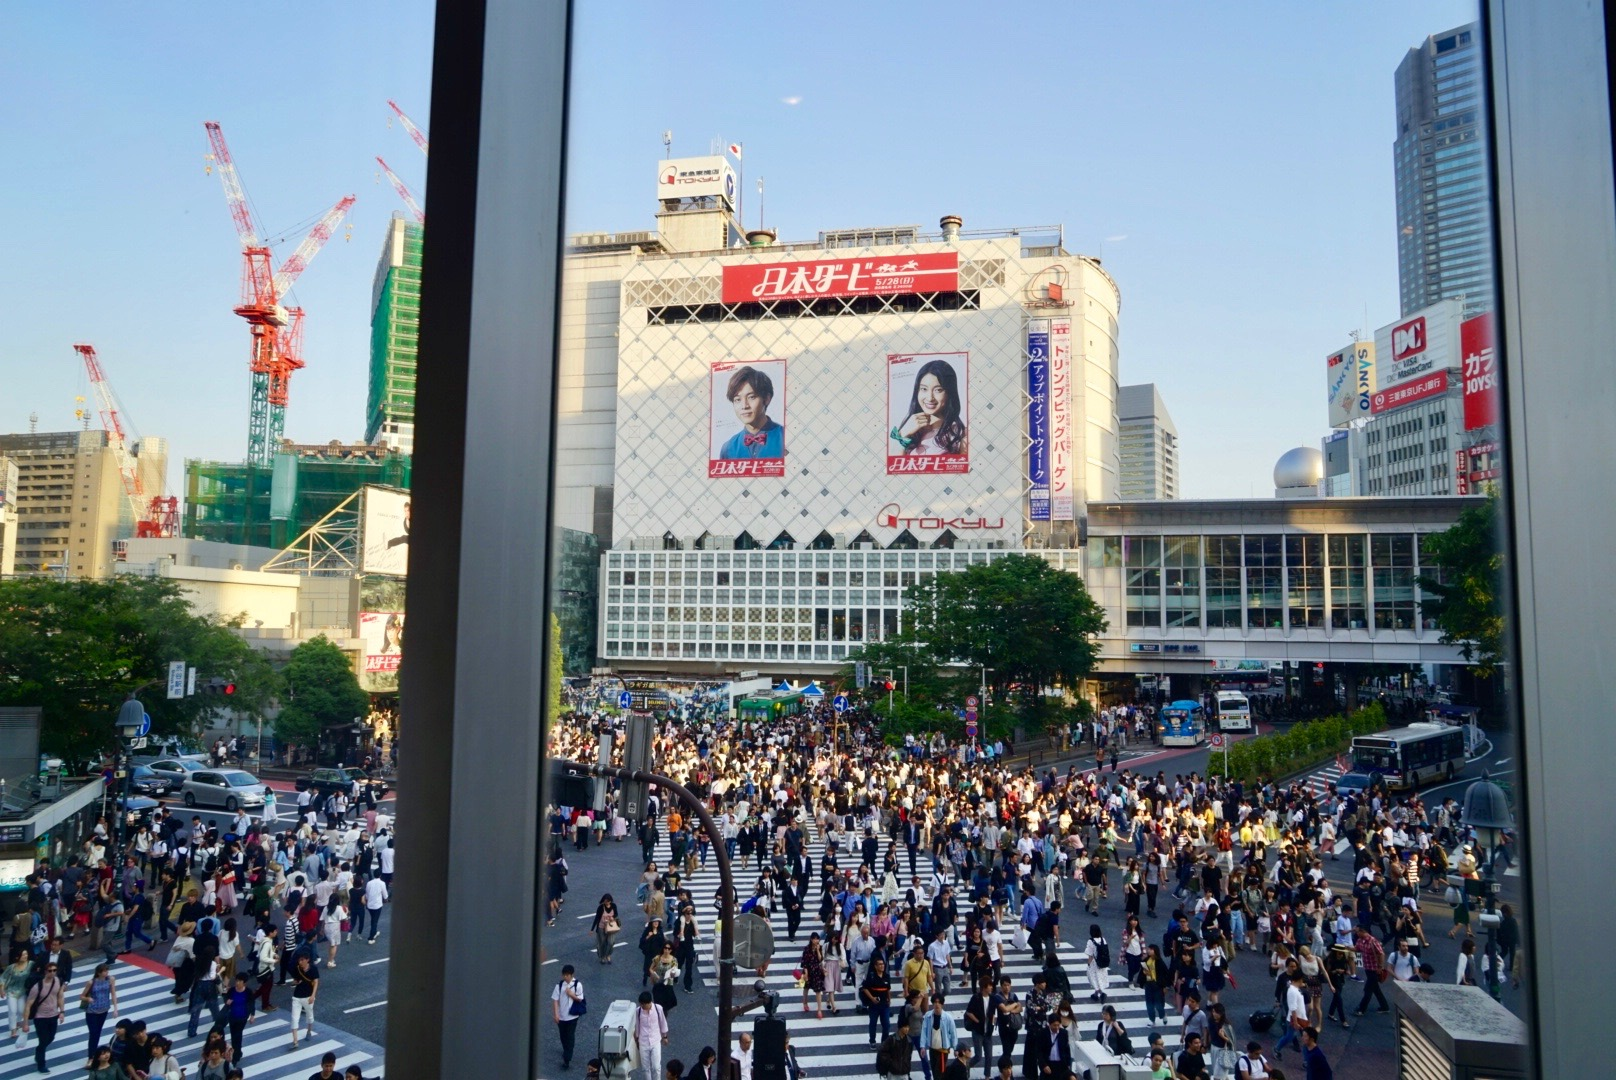 Shibuya crossing - said to be the busiest pedestrian crossing in the world. View from a starbucks on the 2nd floor. So many tourists at this window trying to get this shot - finally it was my turn!